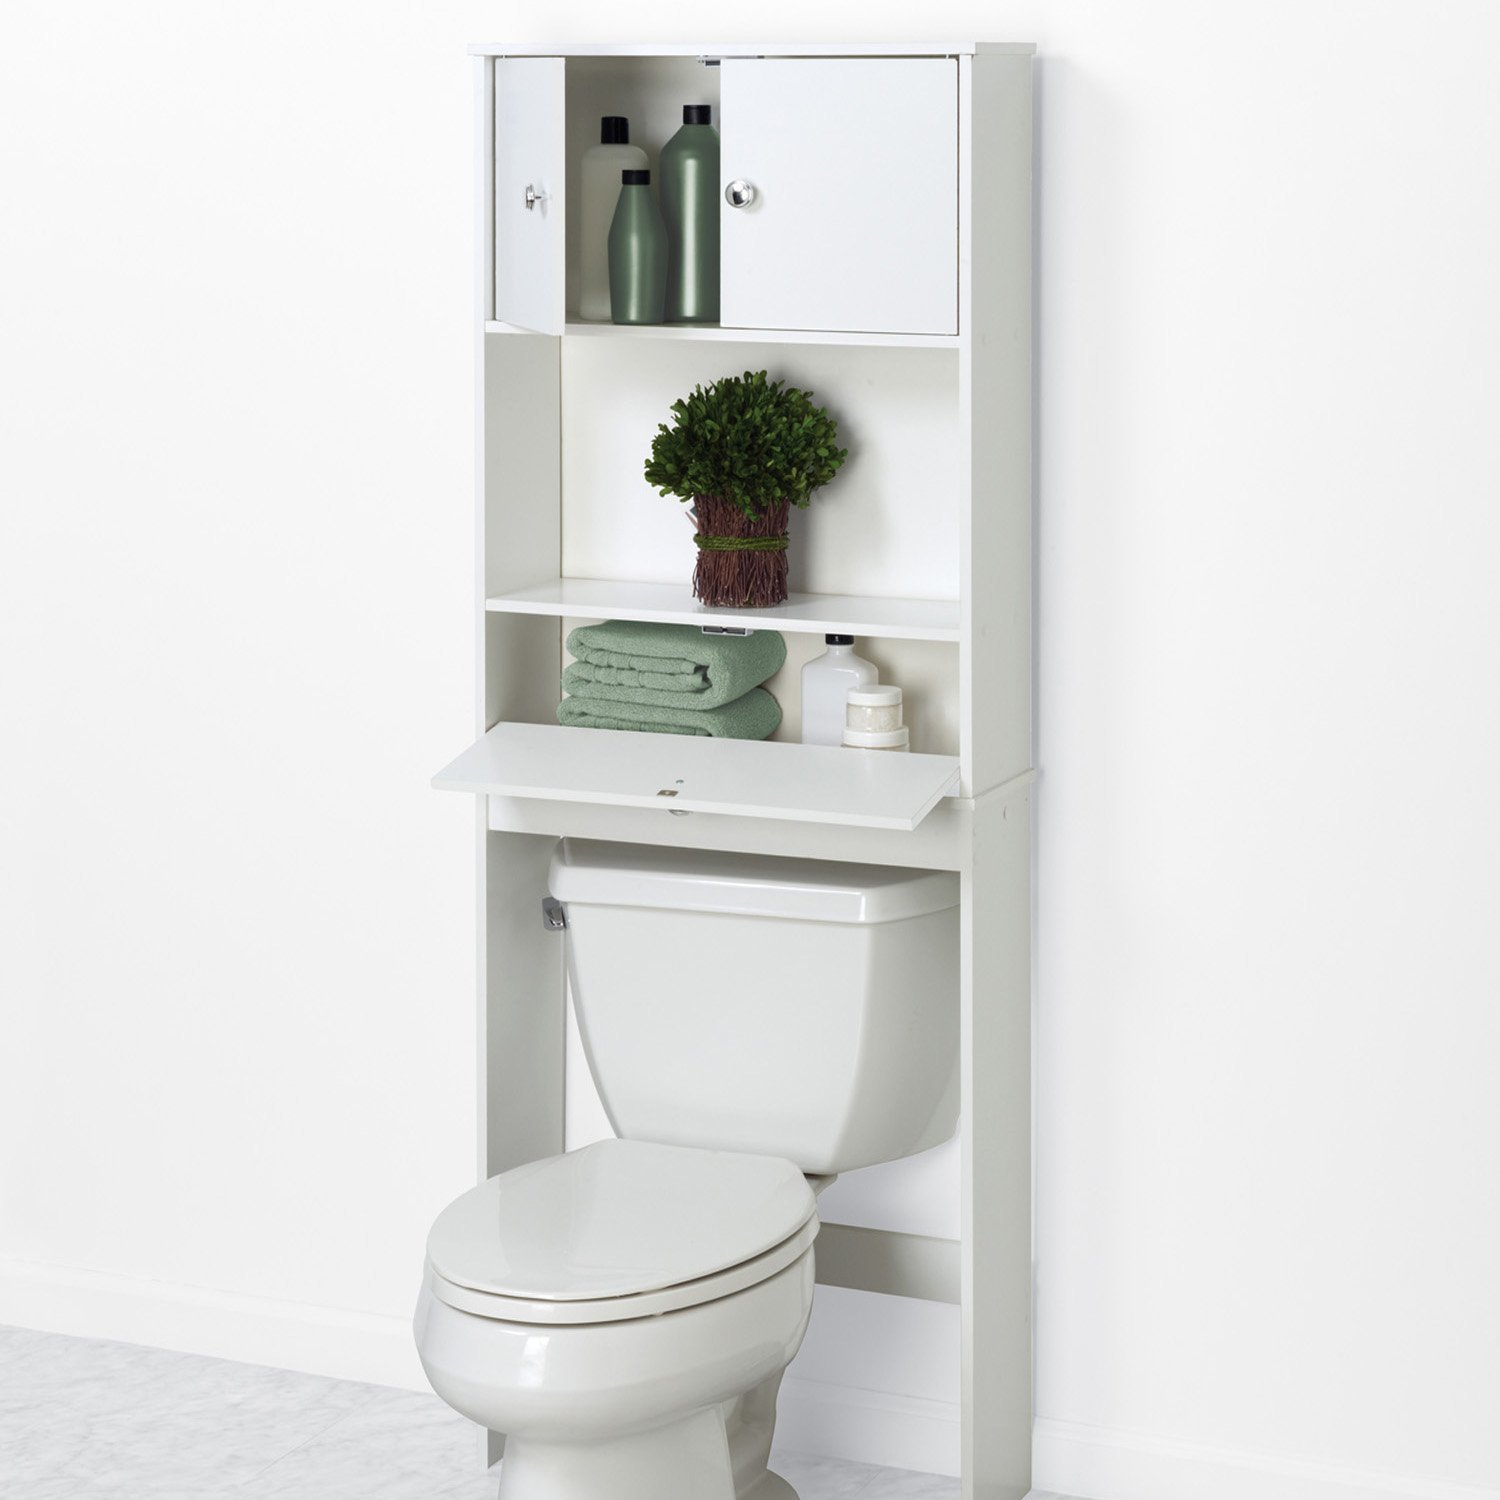 Brilliant Vosgesparis Spacesaving Bathroom Solutions With Shelves